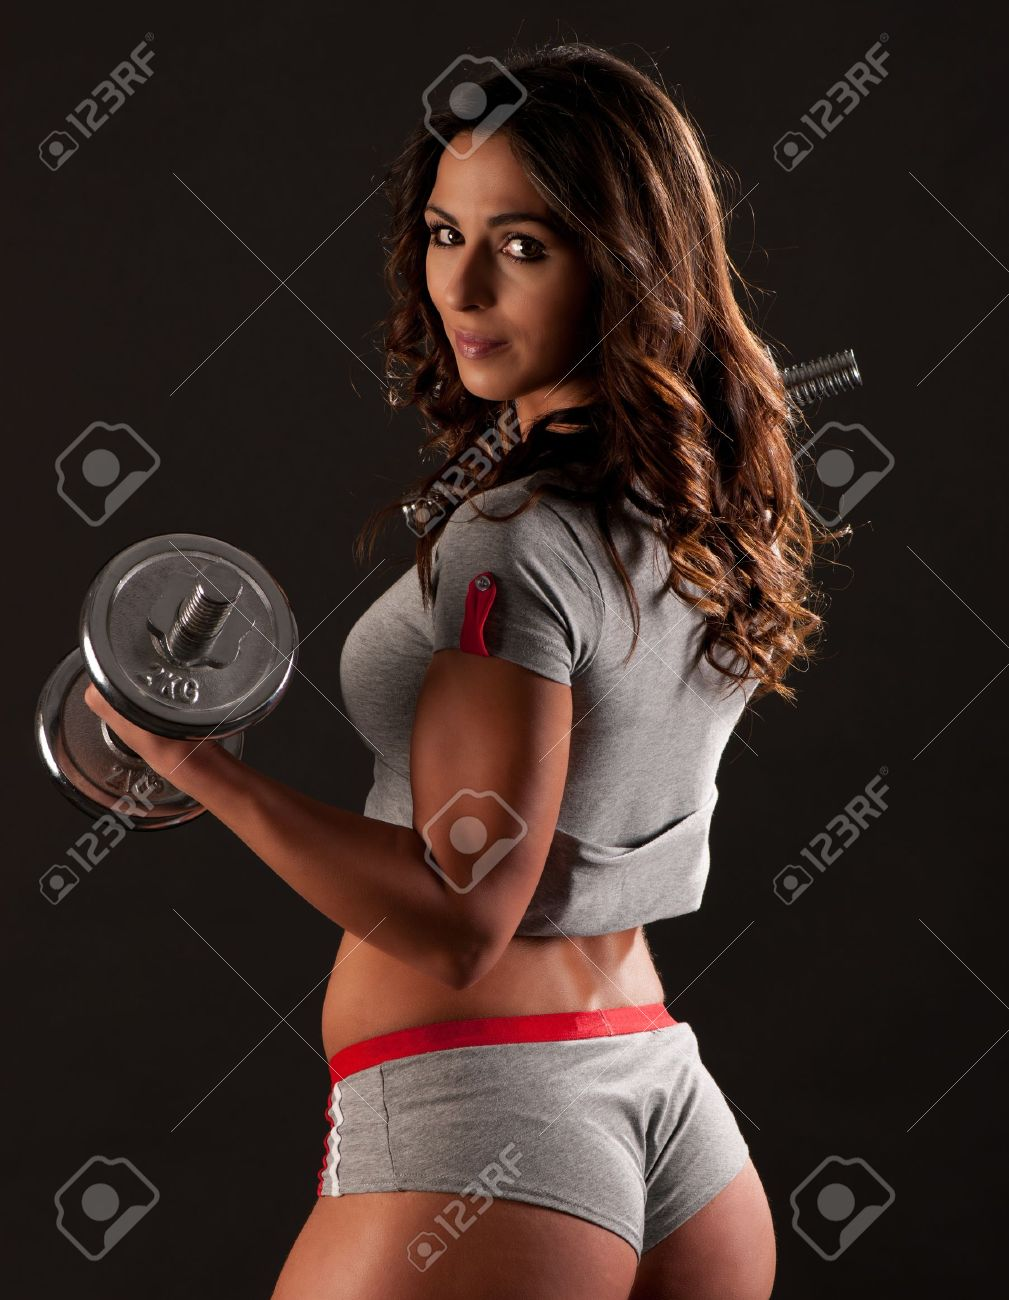 Young fit girl working out with weights - Portrait of pretty young woman lifting dumbbells during exercising Stock Photo - 12728506